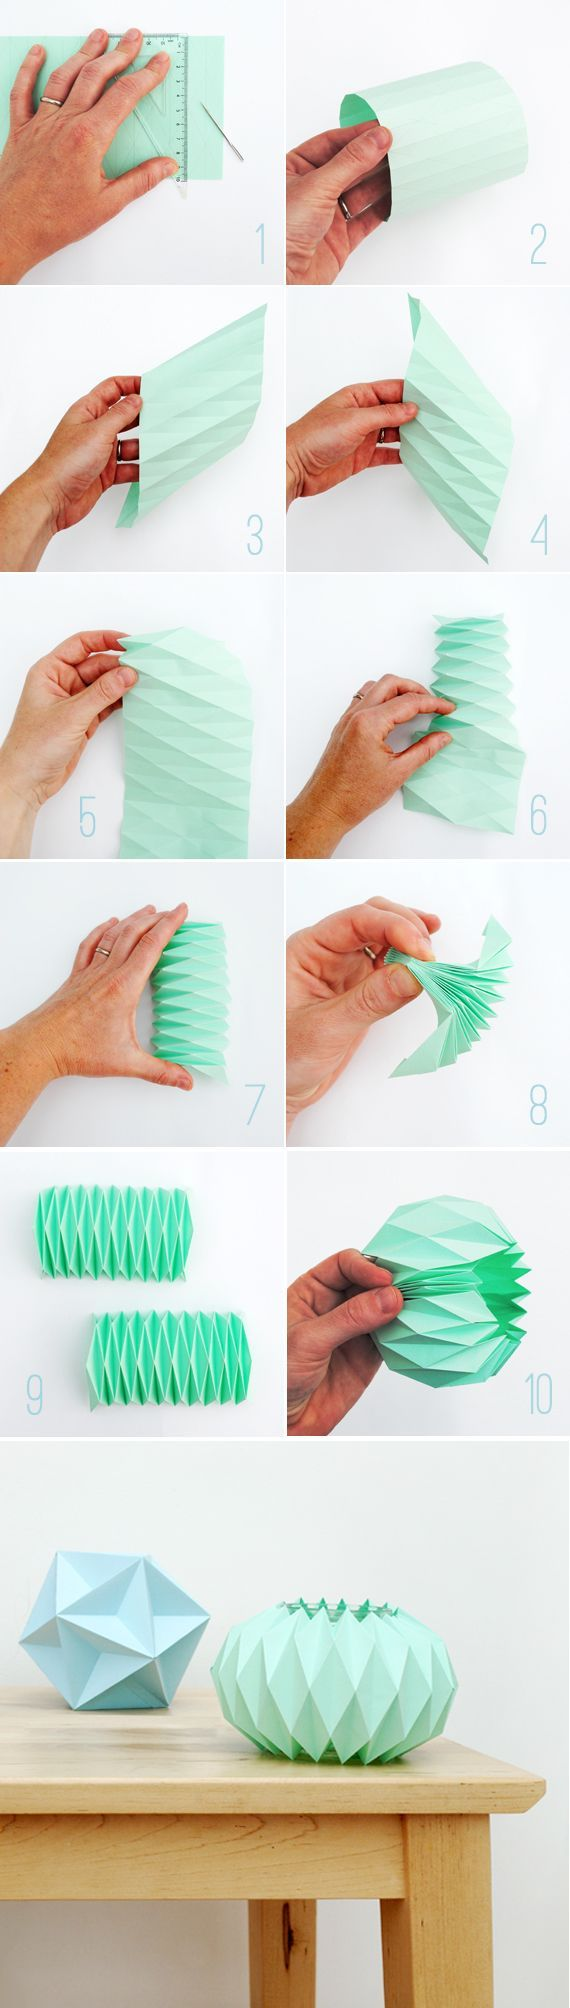 Folded Paper Candle Holder Cuffs » Curbly | DIY Design Community